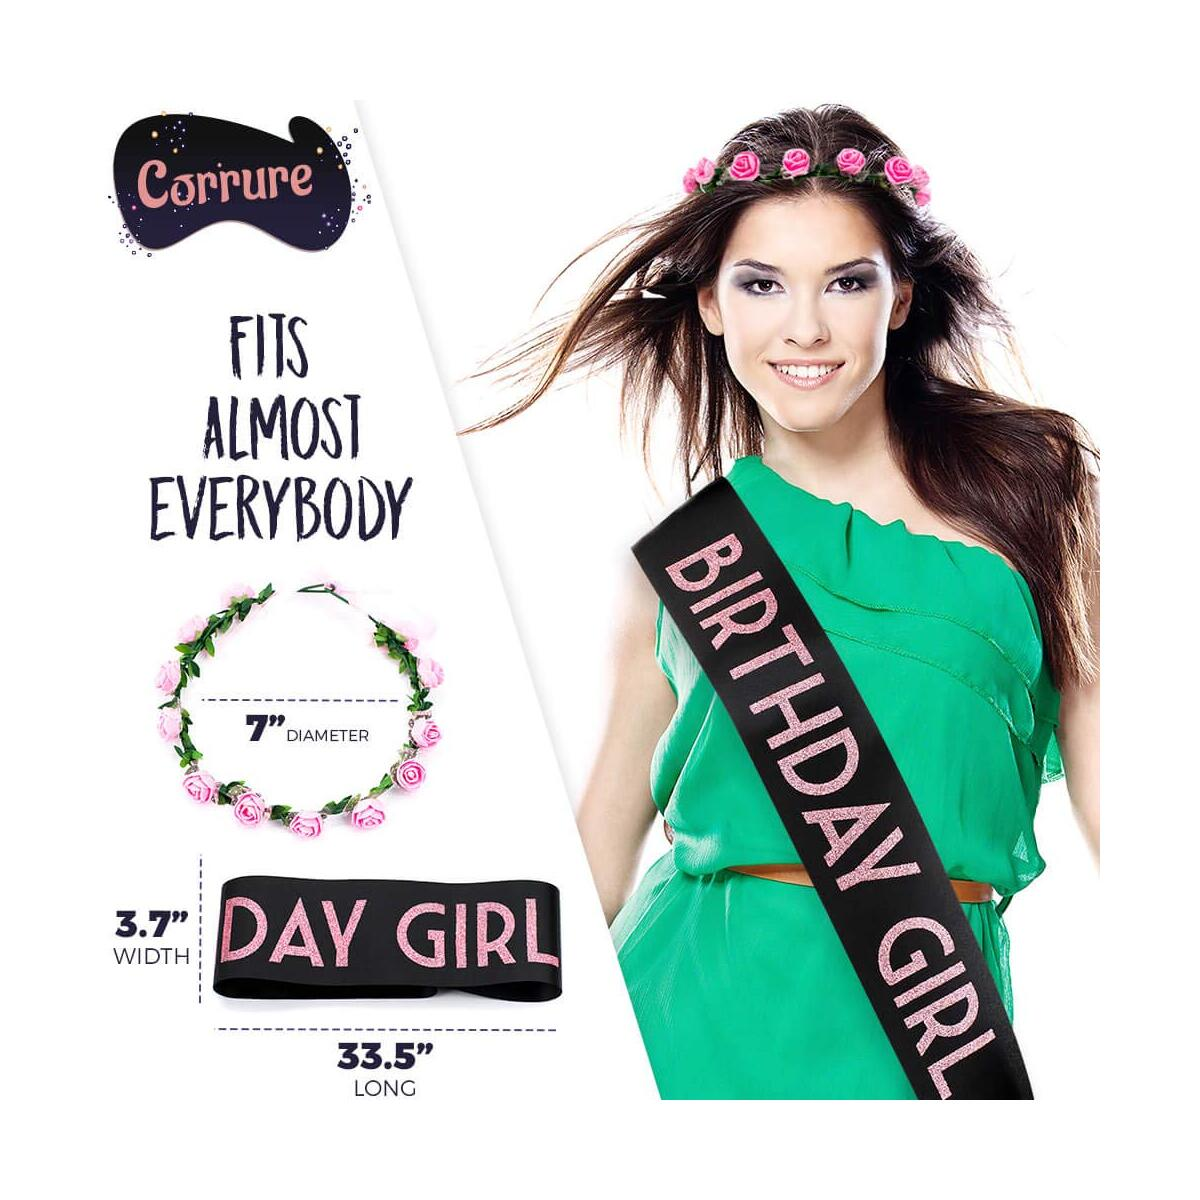 CORRURE 'Birthday Girl' Sash and Tiara - Soft Satin Black with Pink Glitter